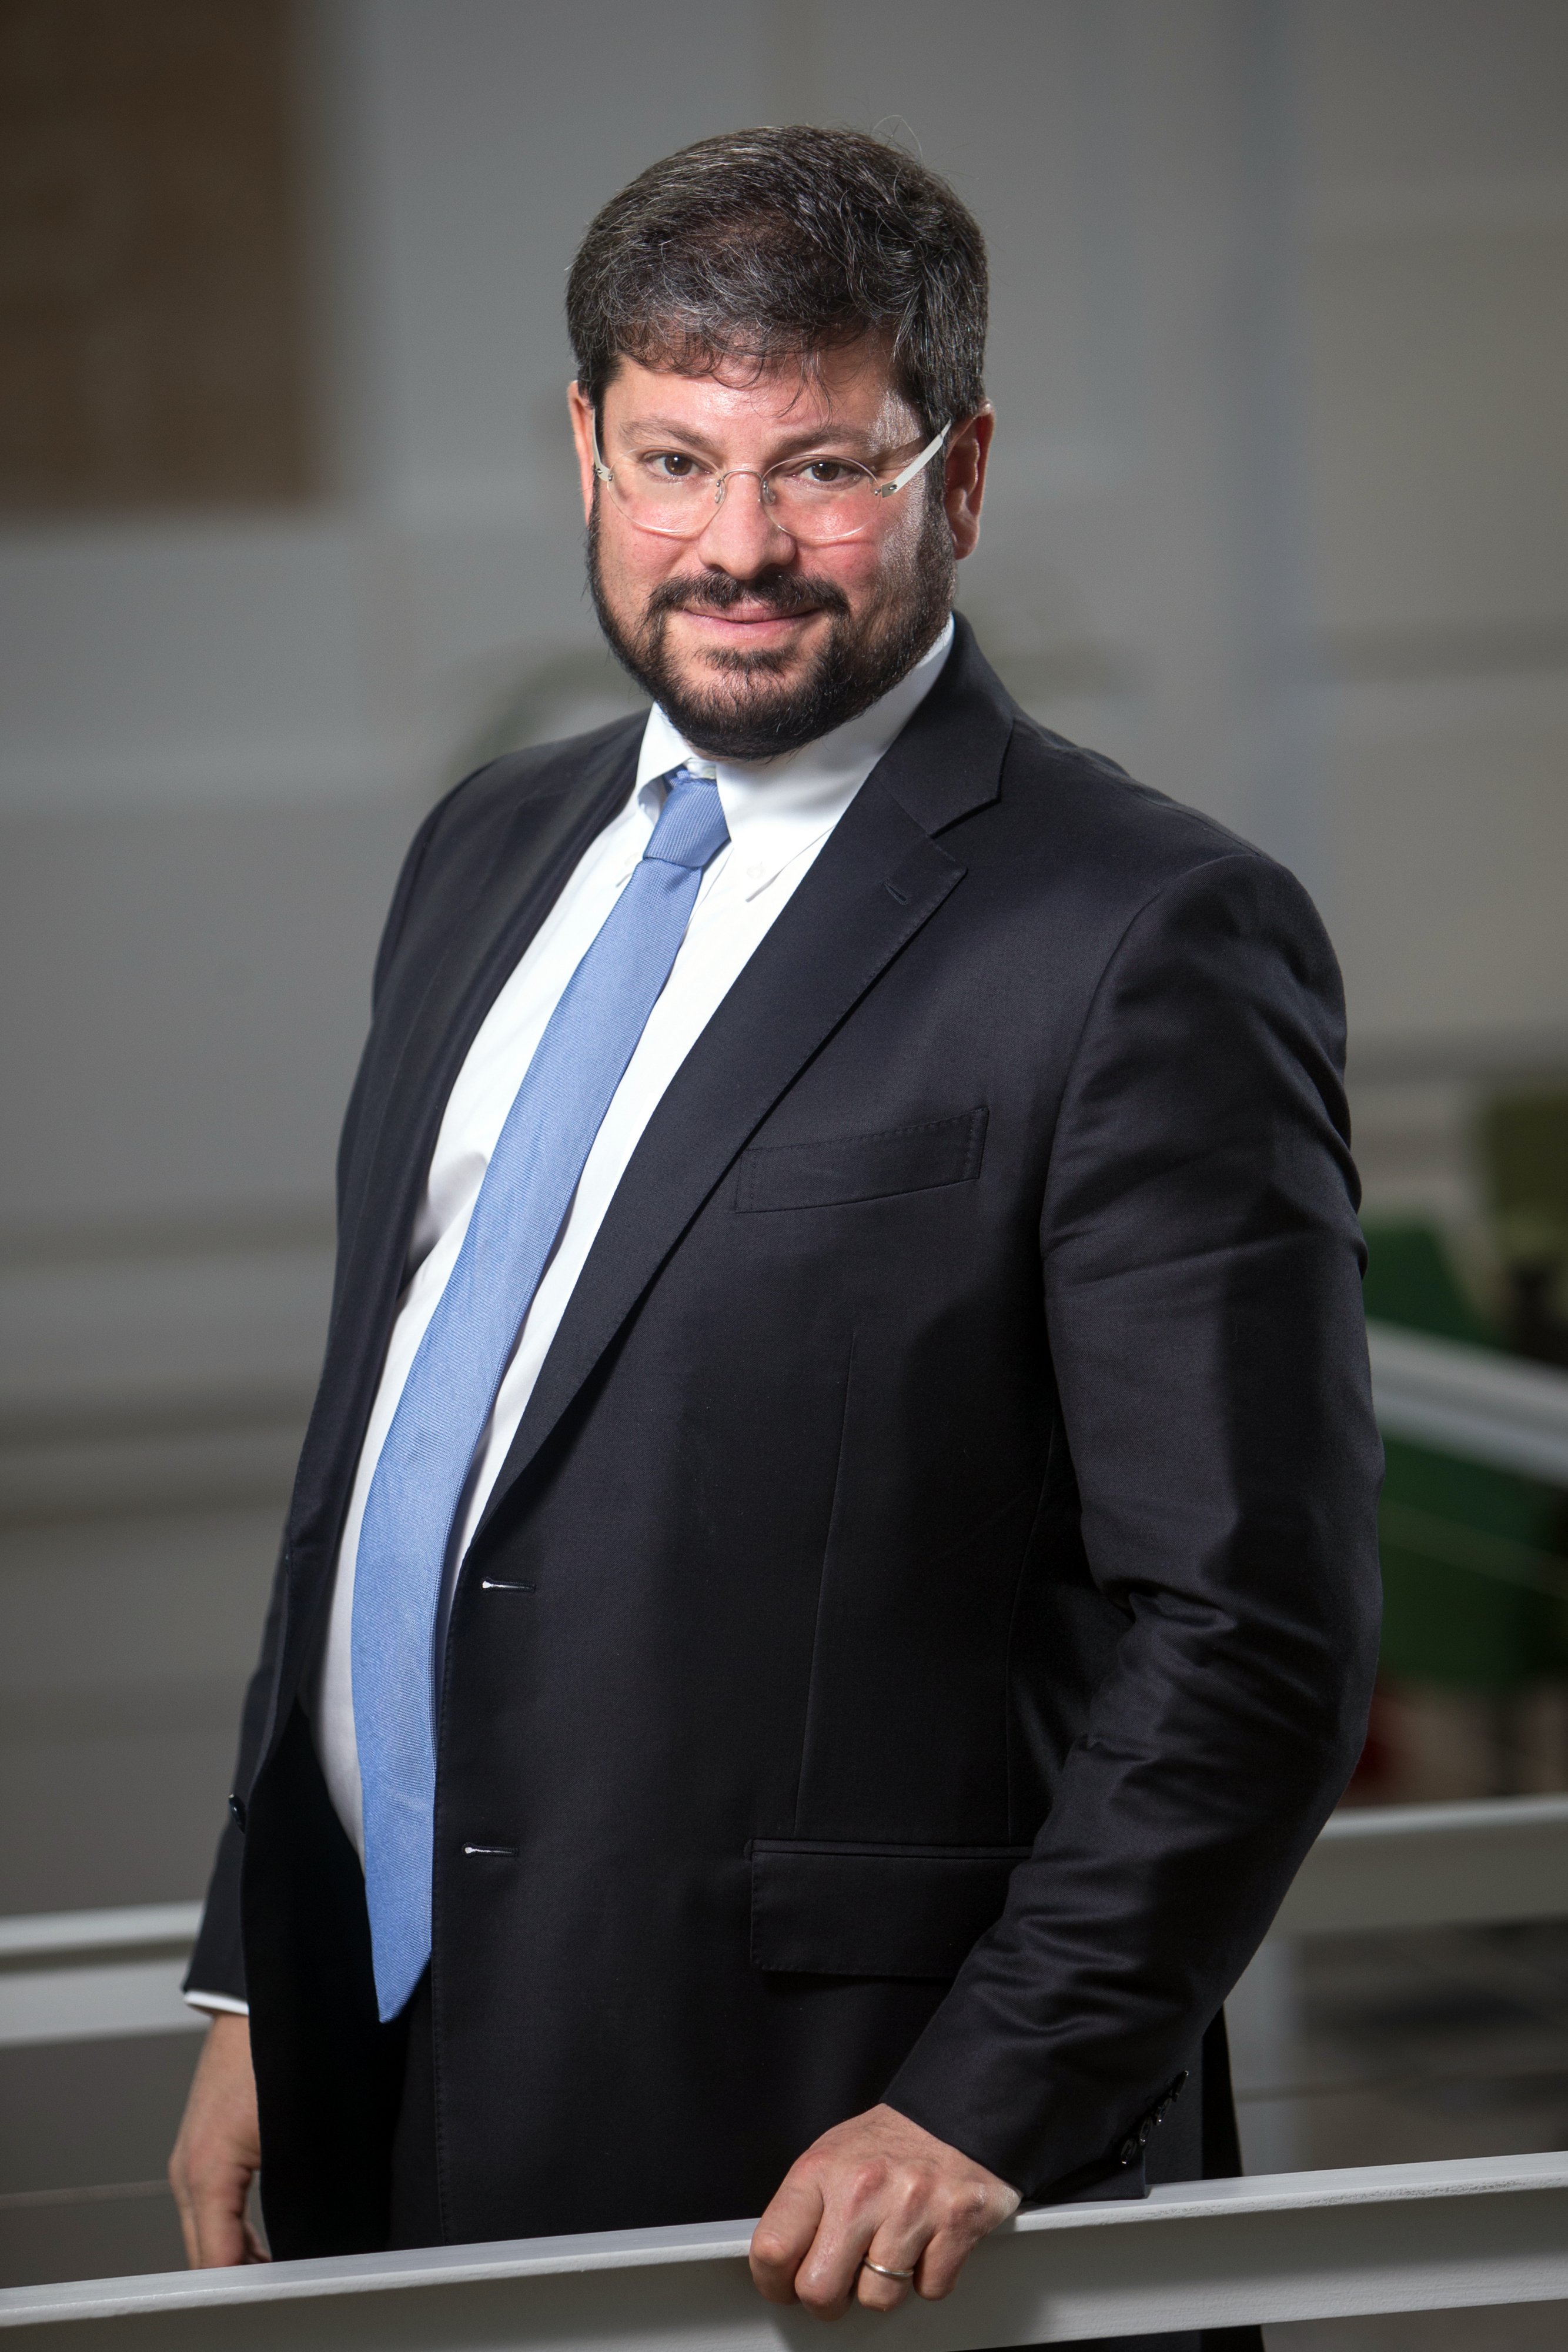 Noah M. Steinberg, Chairman & CEO of WING, Chairman of RICS Hungary